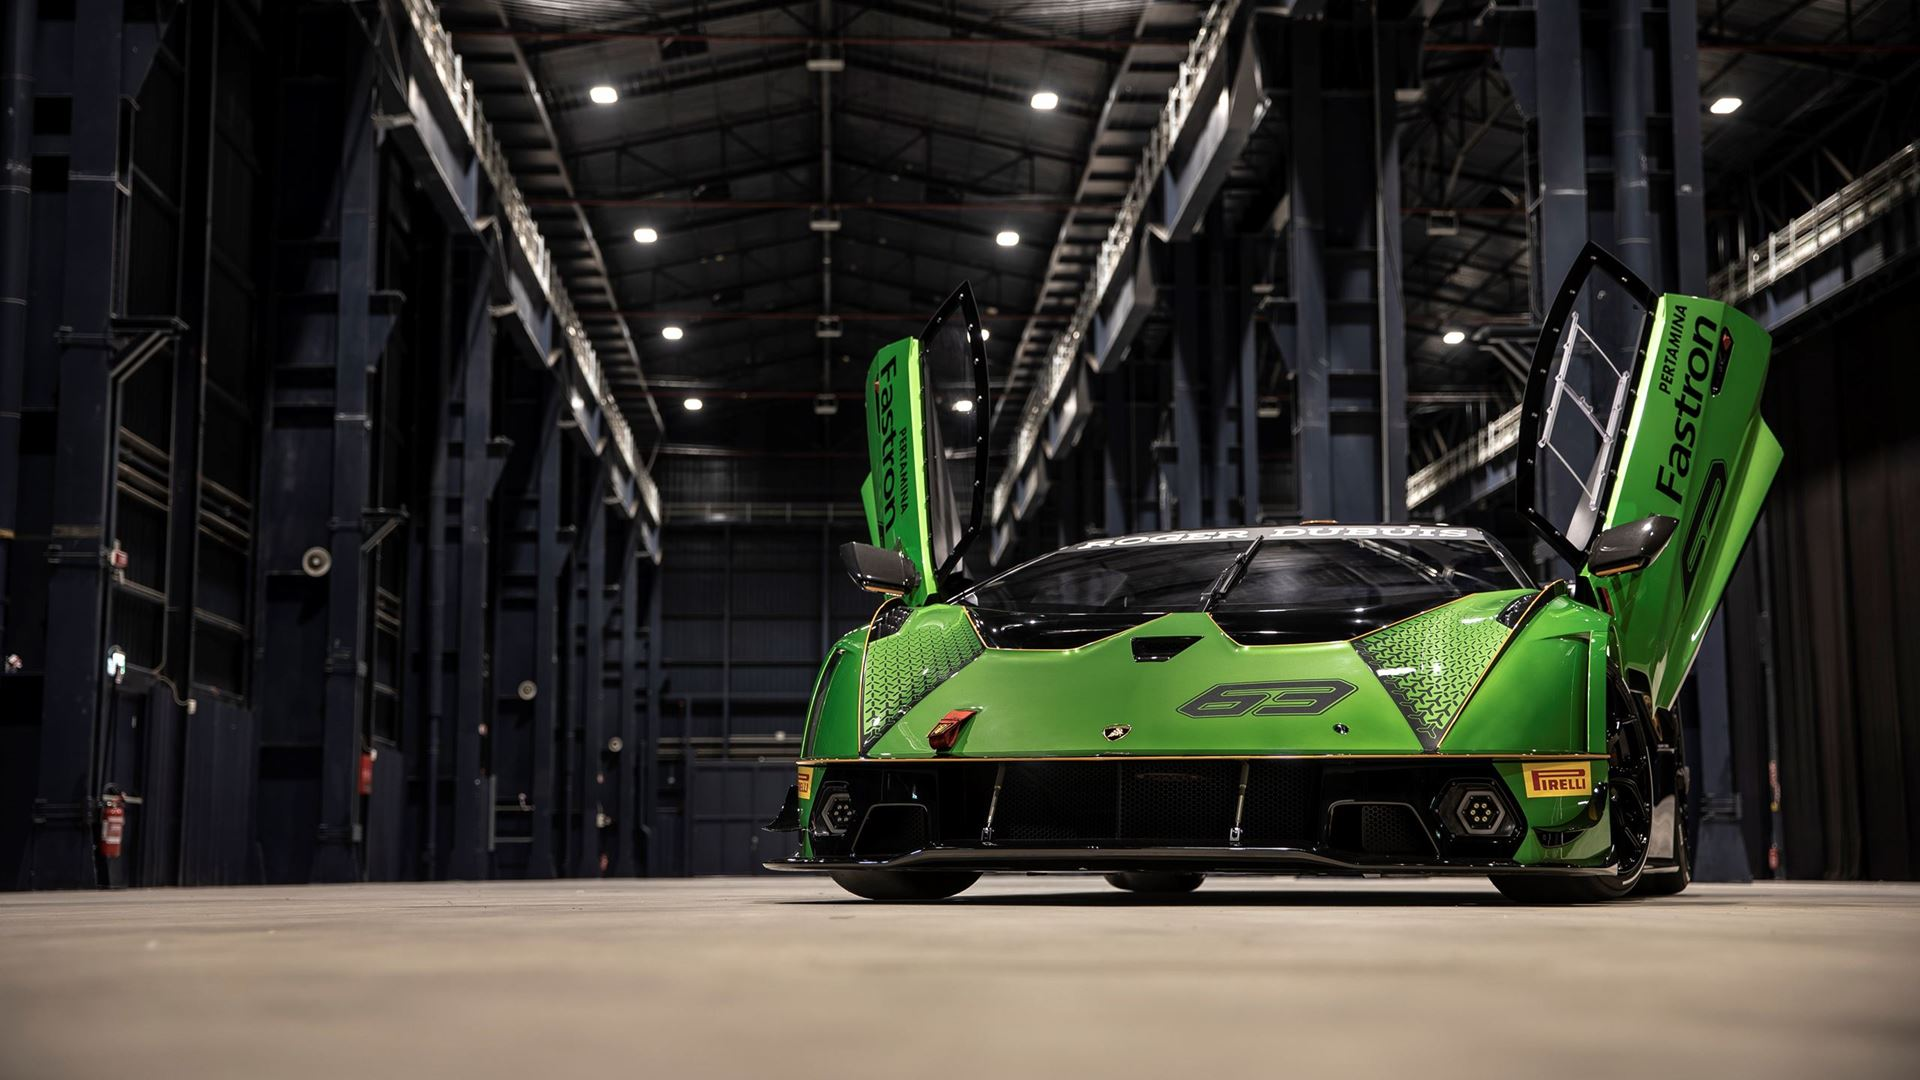 Lamborghini makes its debut in the Asphalt 9: Legends video game with the Essenza SCV12 - Image 2